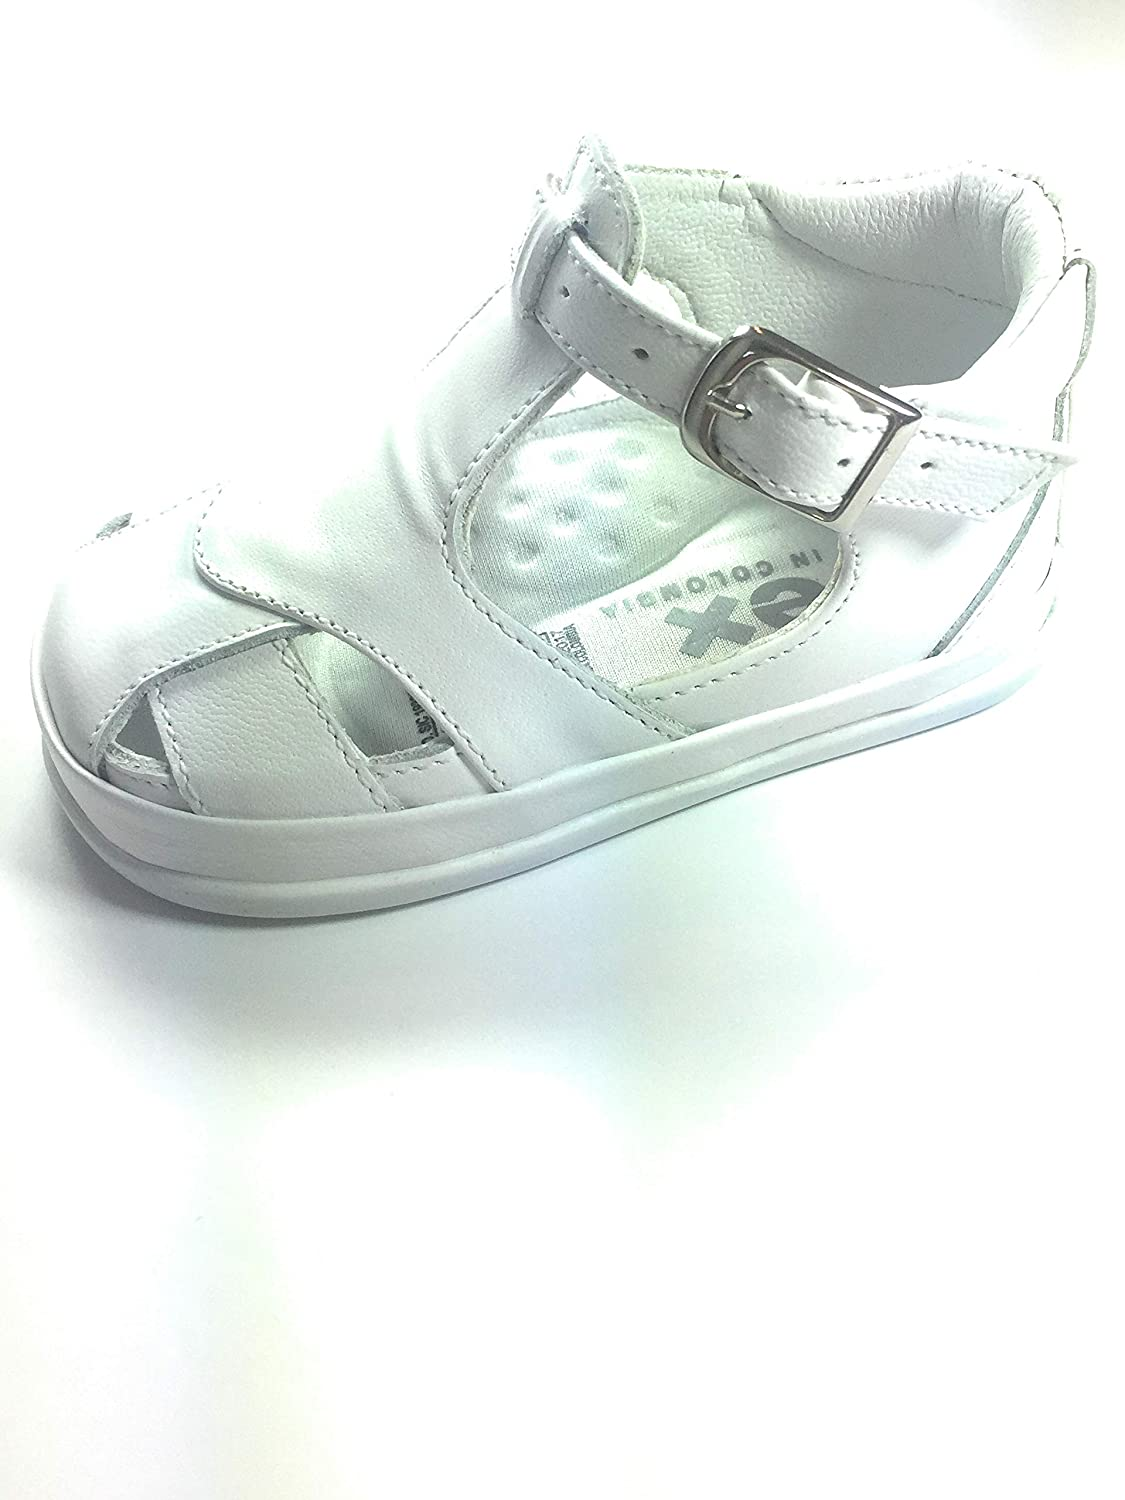 Pex Boys Shoes White, Leather Upper